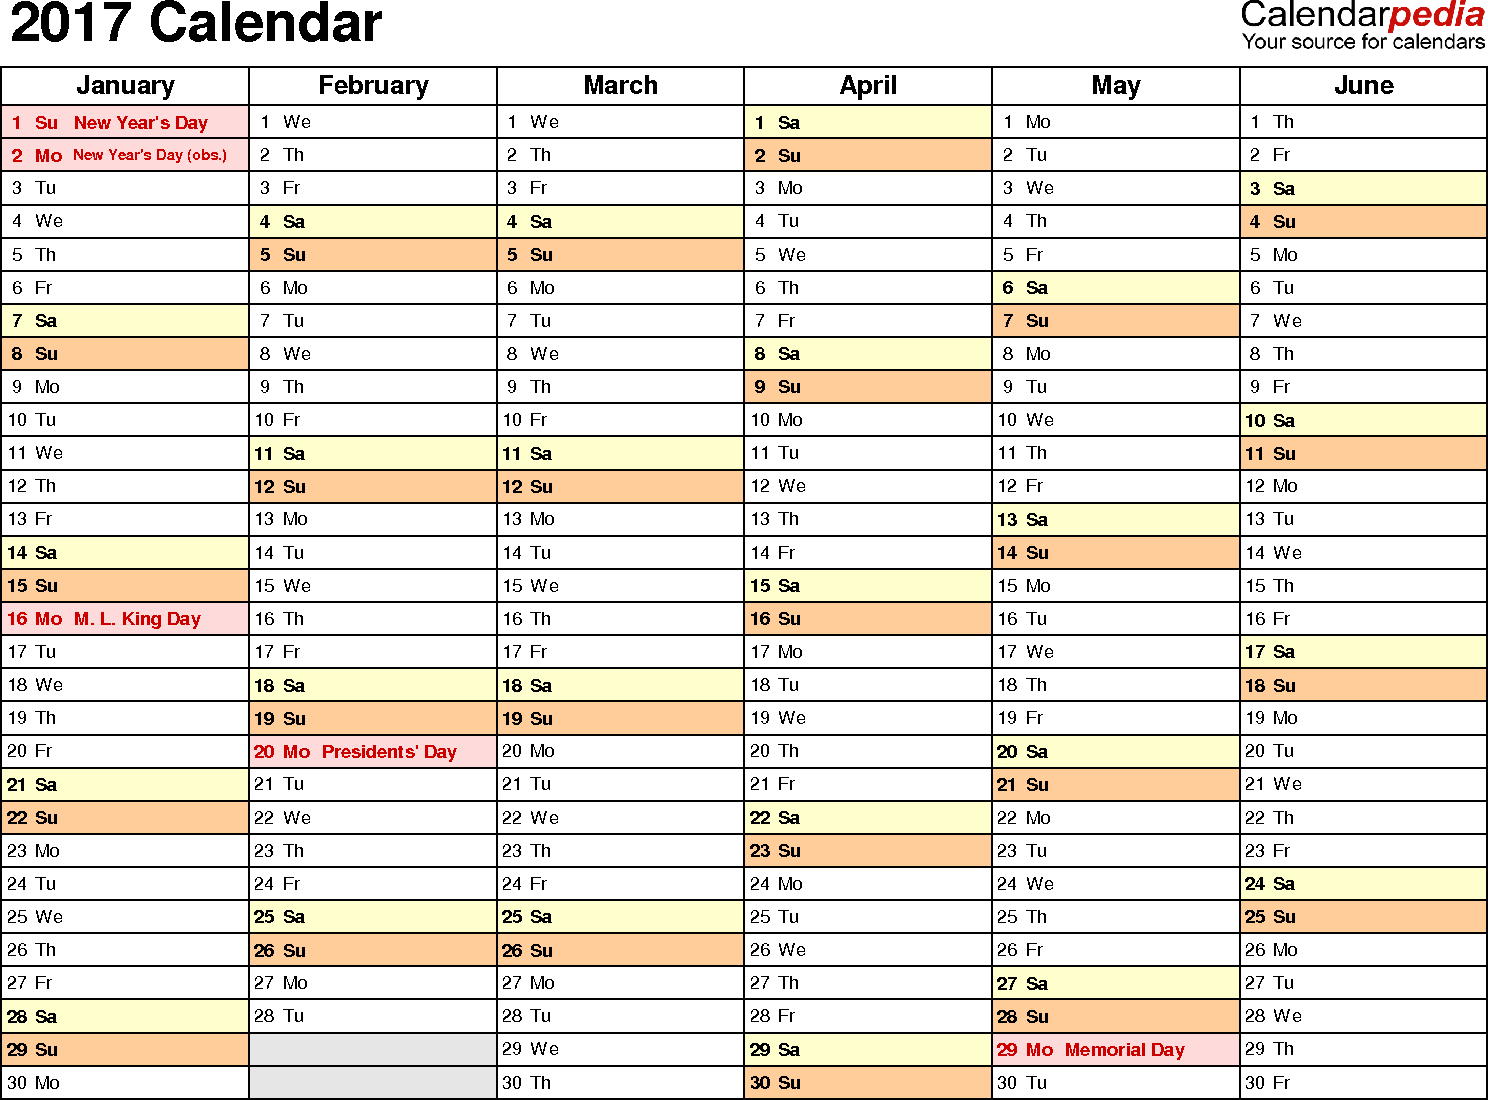 Ediblewildsus  Outstanding  Calendar  Download  Free Printable Excel Templates Xls With Fascinating Template   Calendar For Excel Months Horizontally  Pages Landscape Orientation With Cute Excel Remove Duplicates From Two Columns Also Excel For Budgeting In Addition Merge Excel Data And Excel Multiple Cells Selected As Well As Excel Calendar Format Additionally Microsoft Excel Meaning From Calendarpediacom With Ediblewildsus  Fascinating  Calendar  Download  Free Printable Excel Templates Xls With Cute Template   Calendar For Excel Months Horizontally  Pages Landscape Orientation And Outstanding Excel Remove Duplicates From Two Columns Also Excel For Budgeting In Addition Merge Excel Data From Calendarpediacom